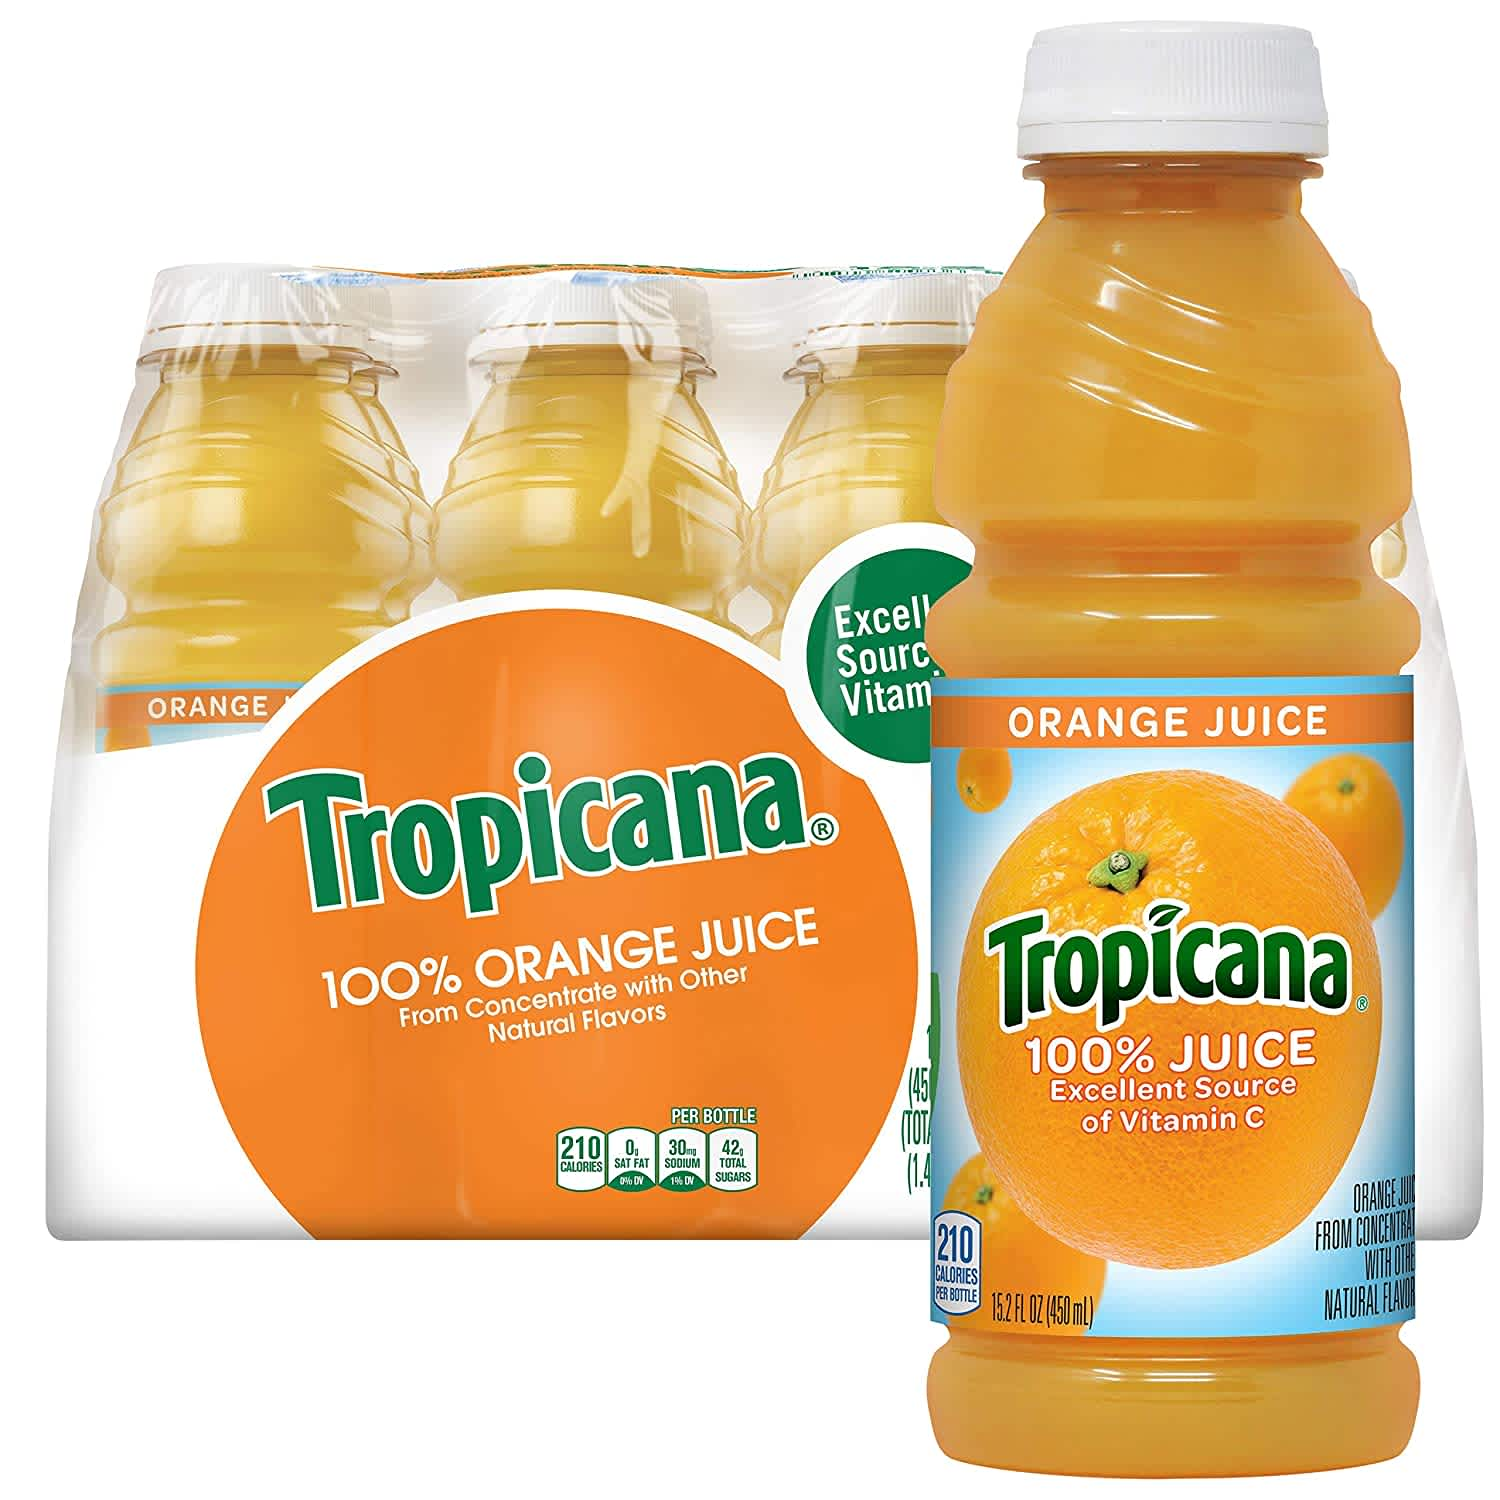 Tropicana Orange Juice 15.2-fl oz. Bottle 12-Pack